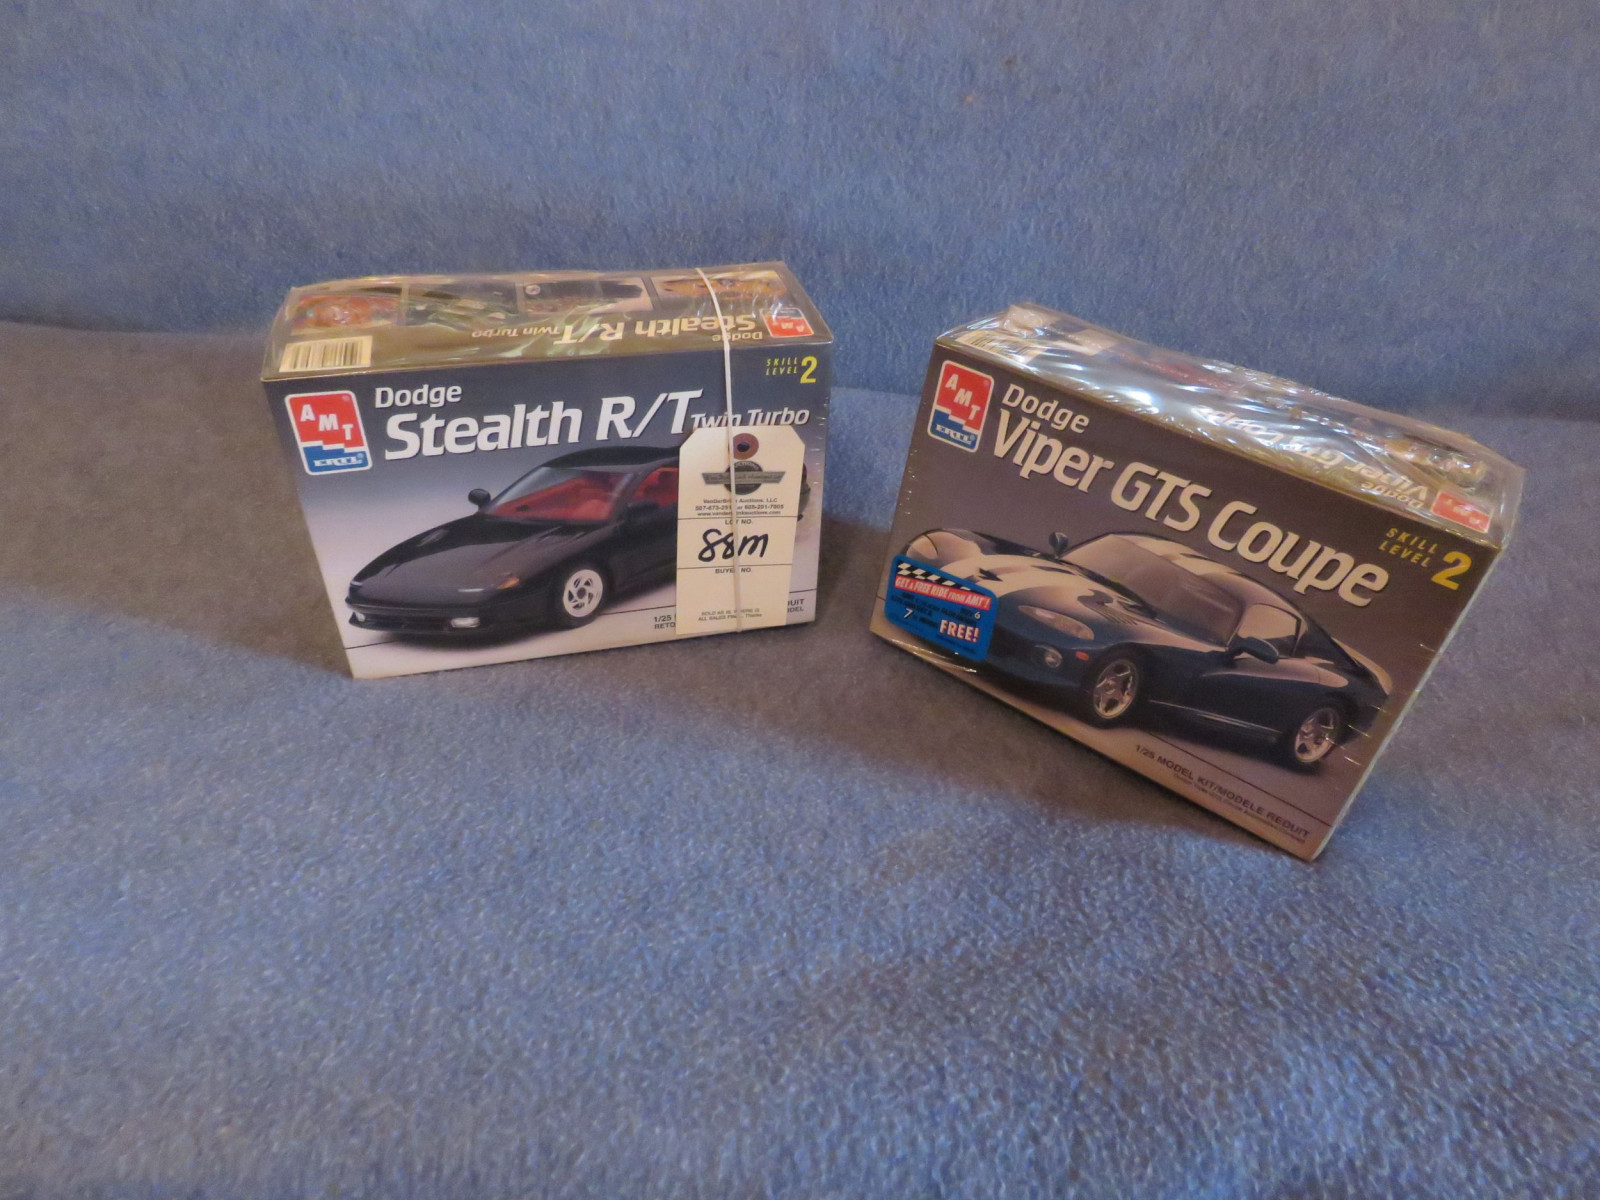 AMT/ERTL Dodge Stealth and Viper GTS Coupe NIB Models - Image 1